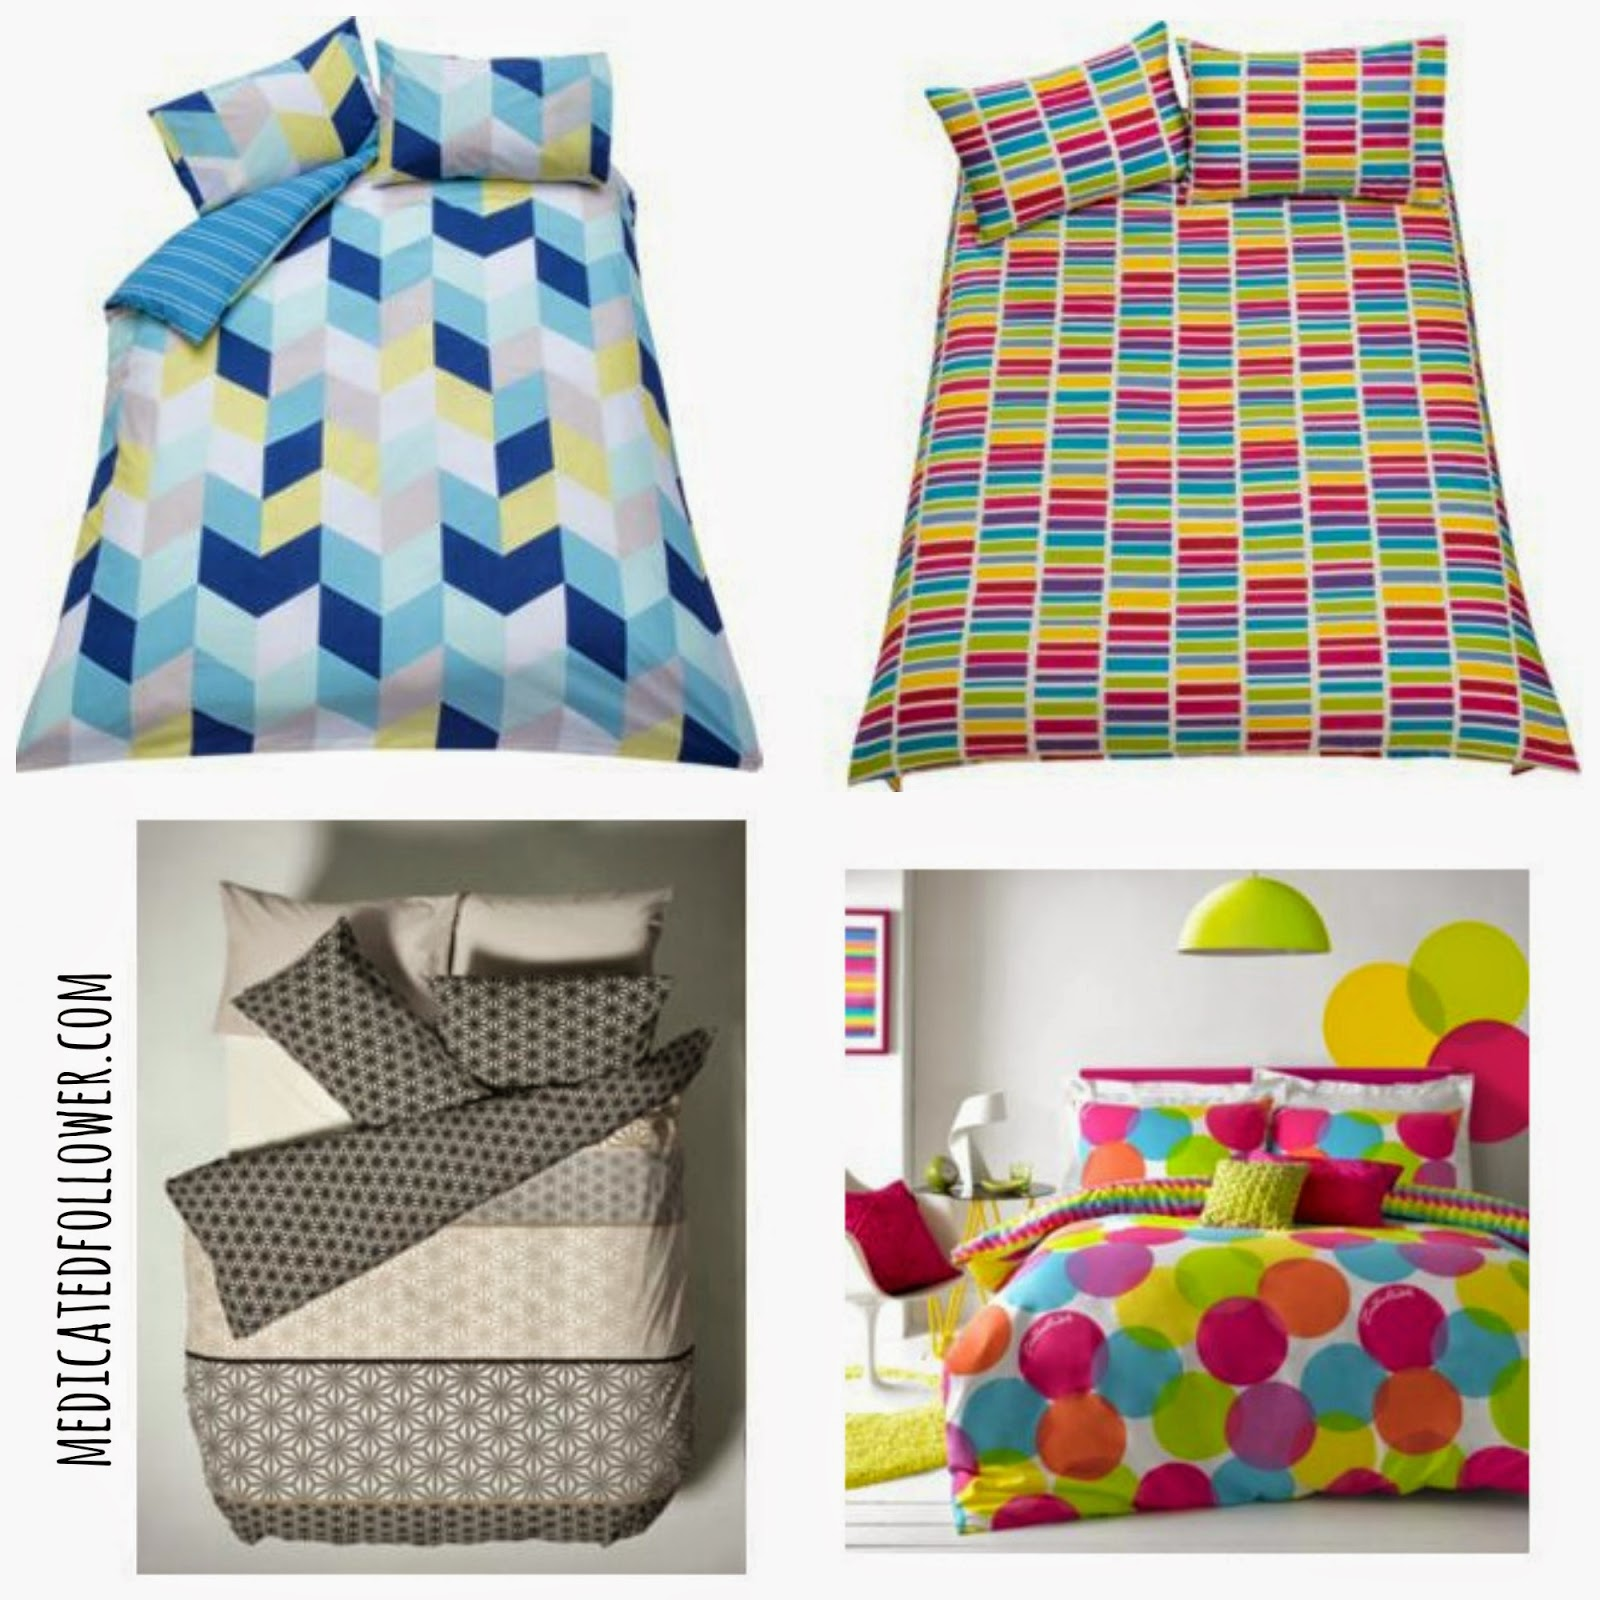 Argos bedding, duvet covers, geometric, bright, modern, medicated follower of fashion